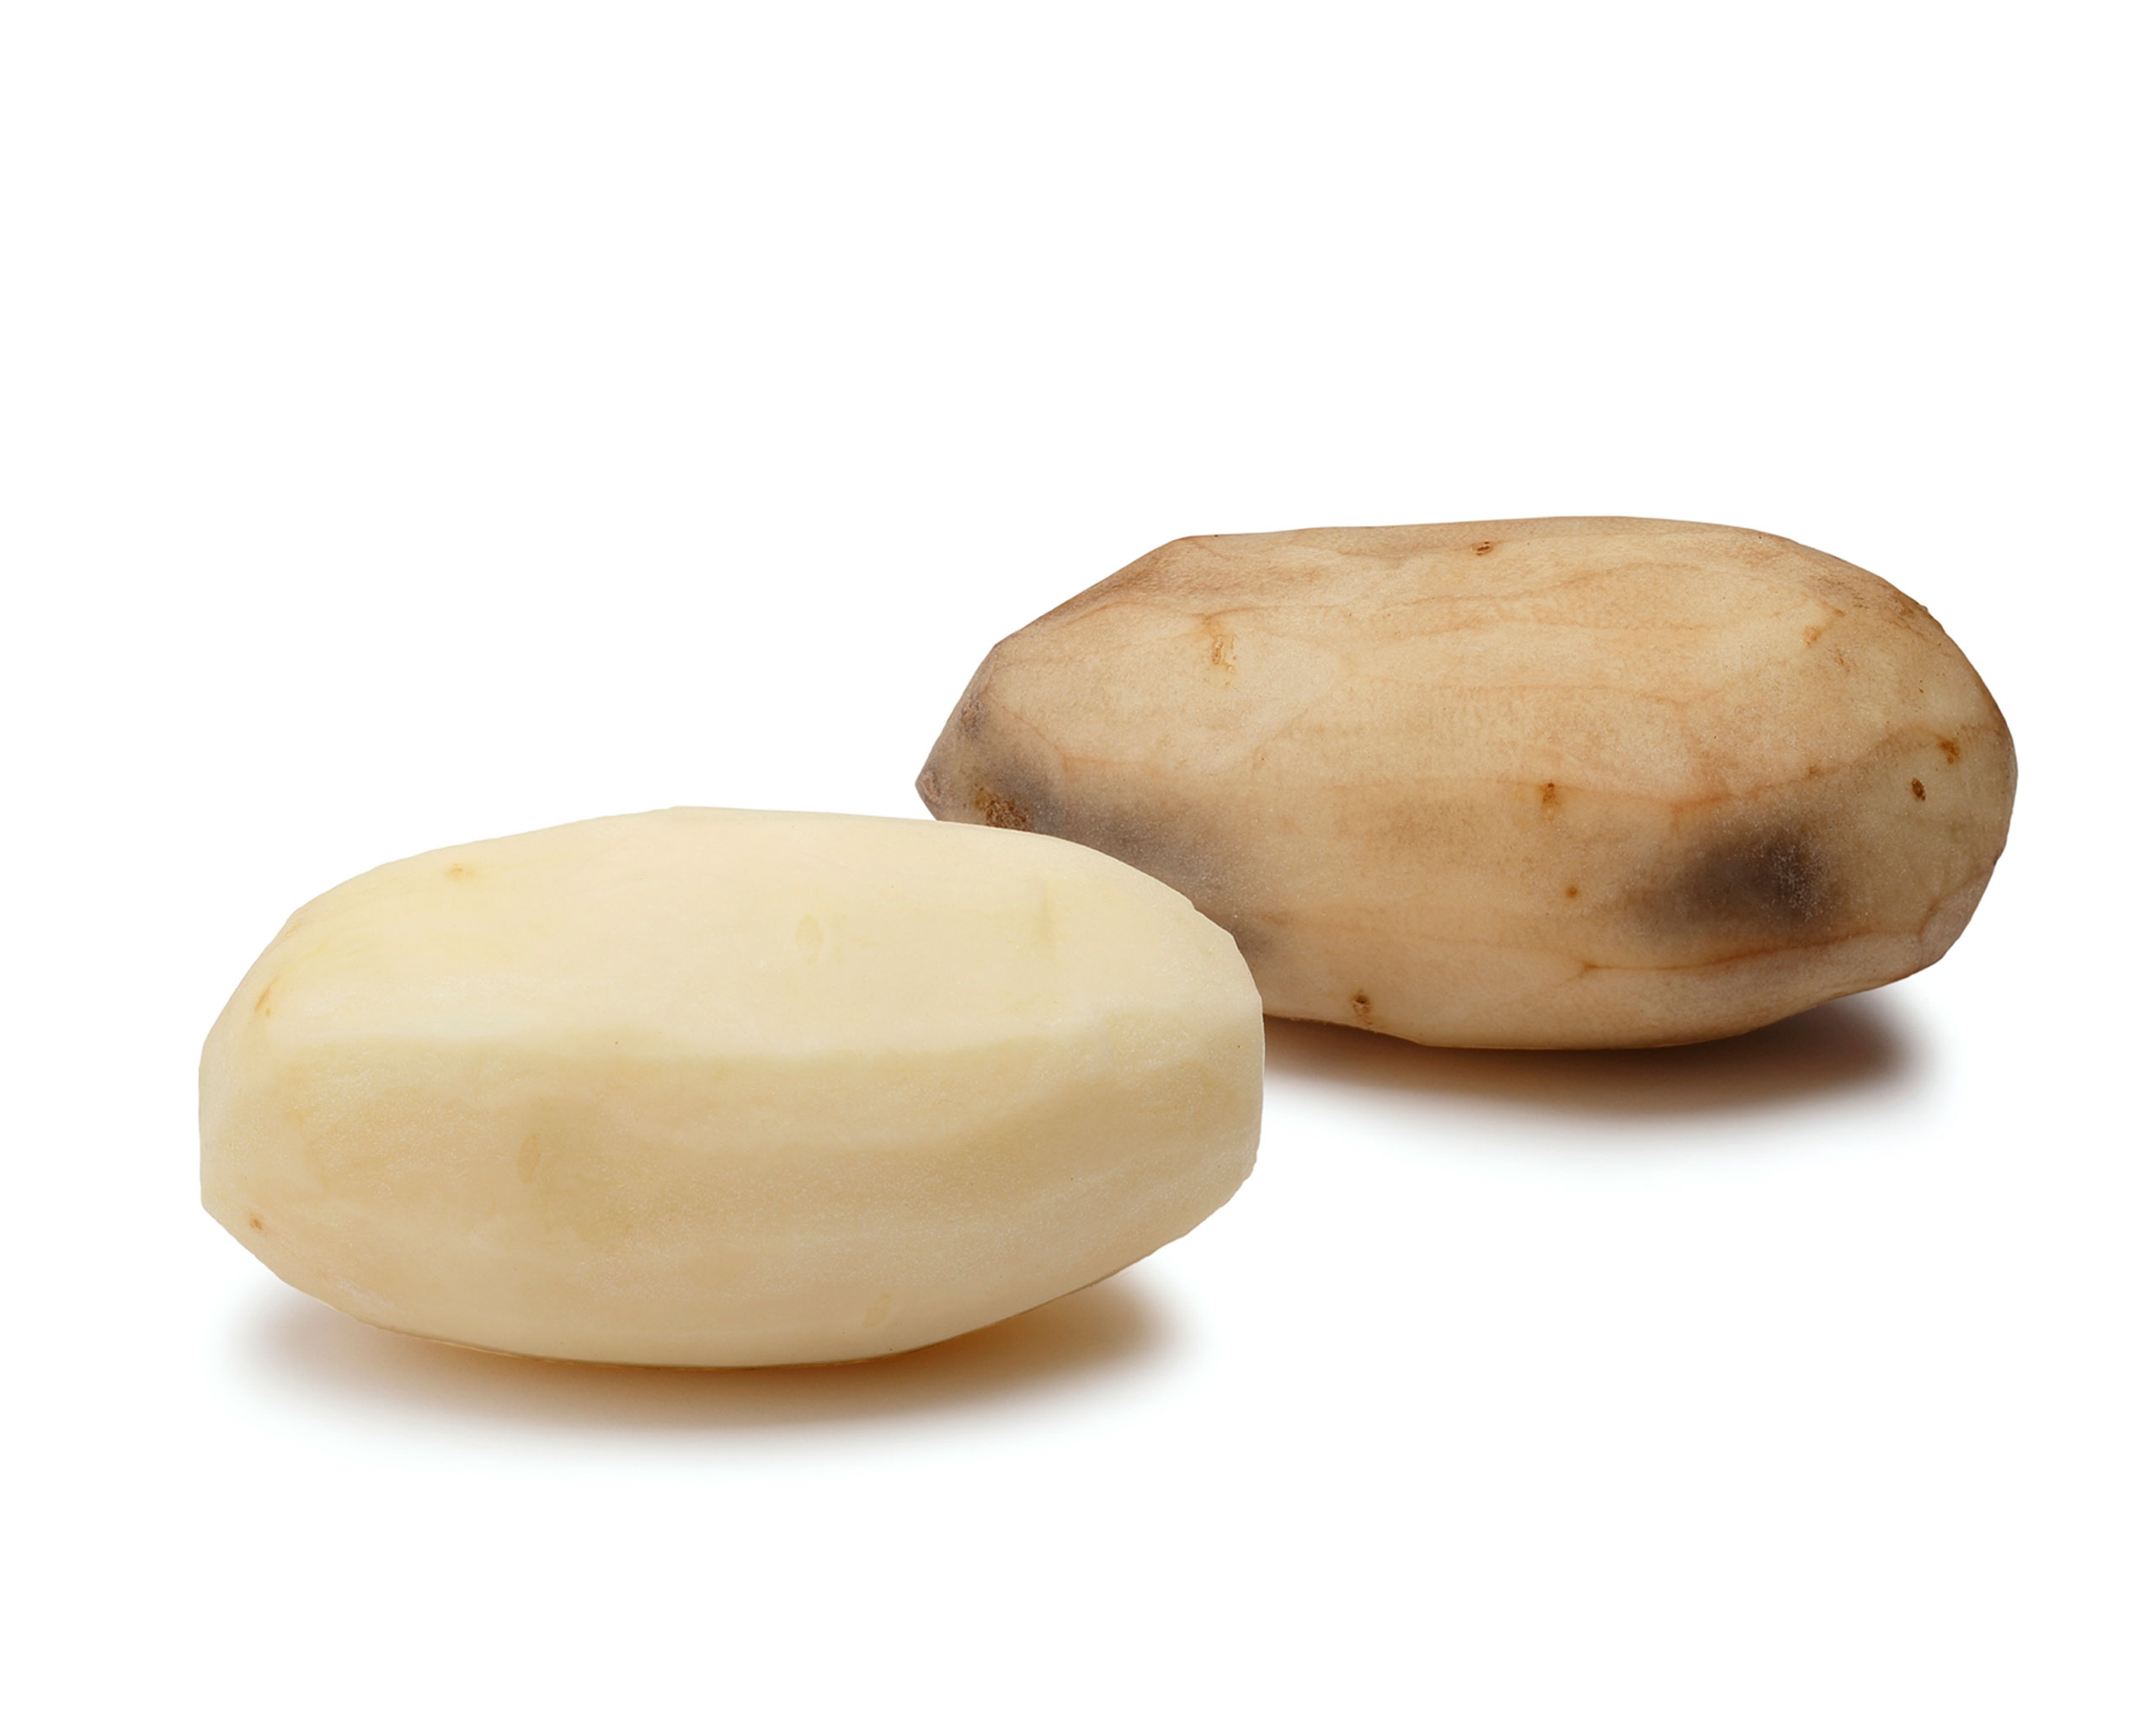 Genetically modified potatoes from the Simplot Corporation. The Food and Drug Administration (FDA) approved the genetically engineered foods as safe, saying they are as nutritious as their conventional counterparts.